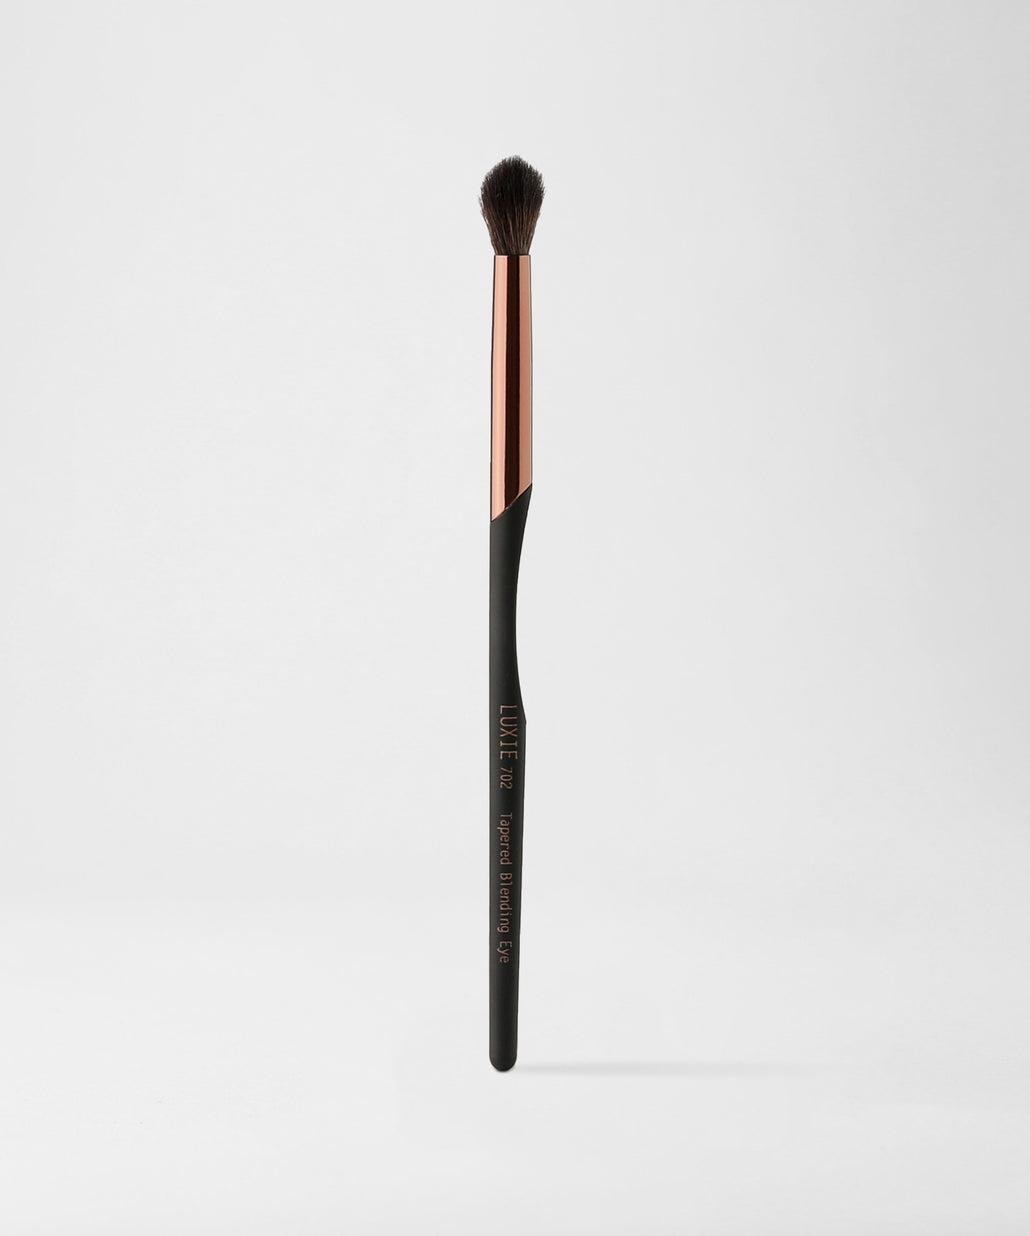 LUXIE 702 Tapered Blending Eye Brush - ProTools